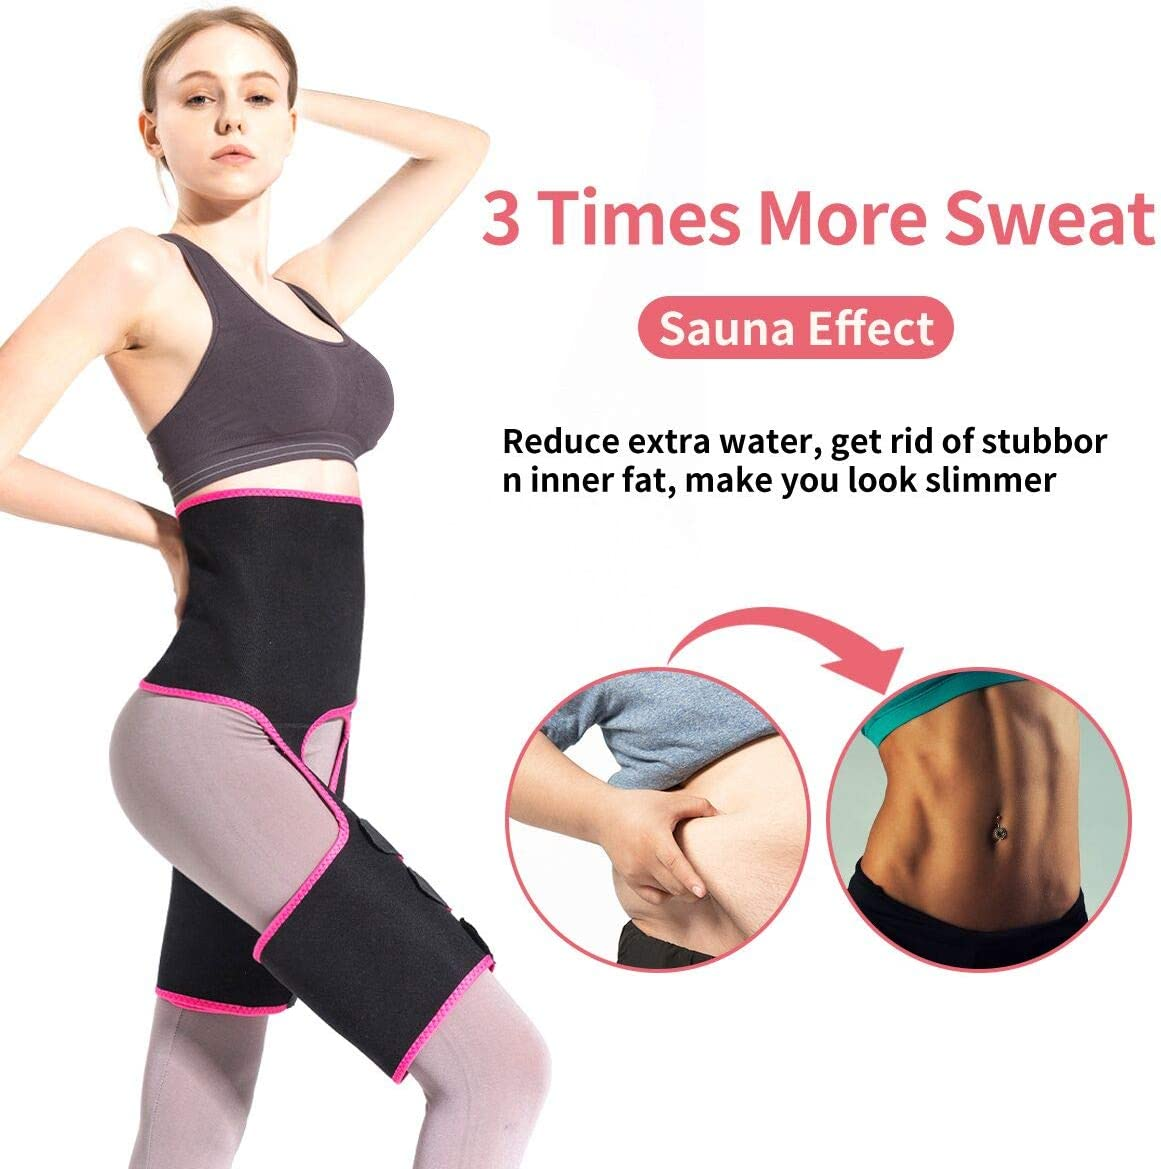 oscaurt Waist Trainer for Women Plus Size Full Body Waste Trainers for Women,3 in 1 High Waist Thigh Trimmer for Women Weight Loss